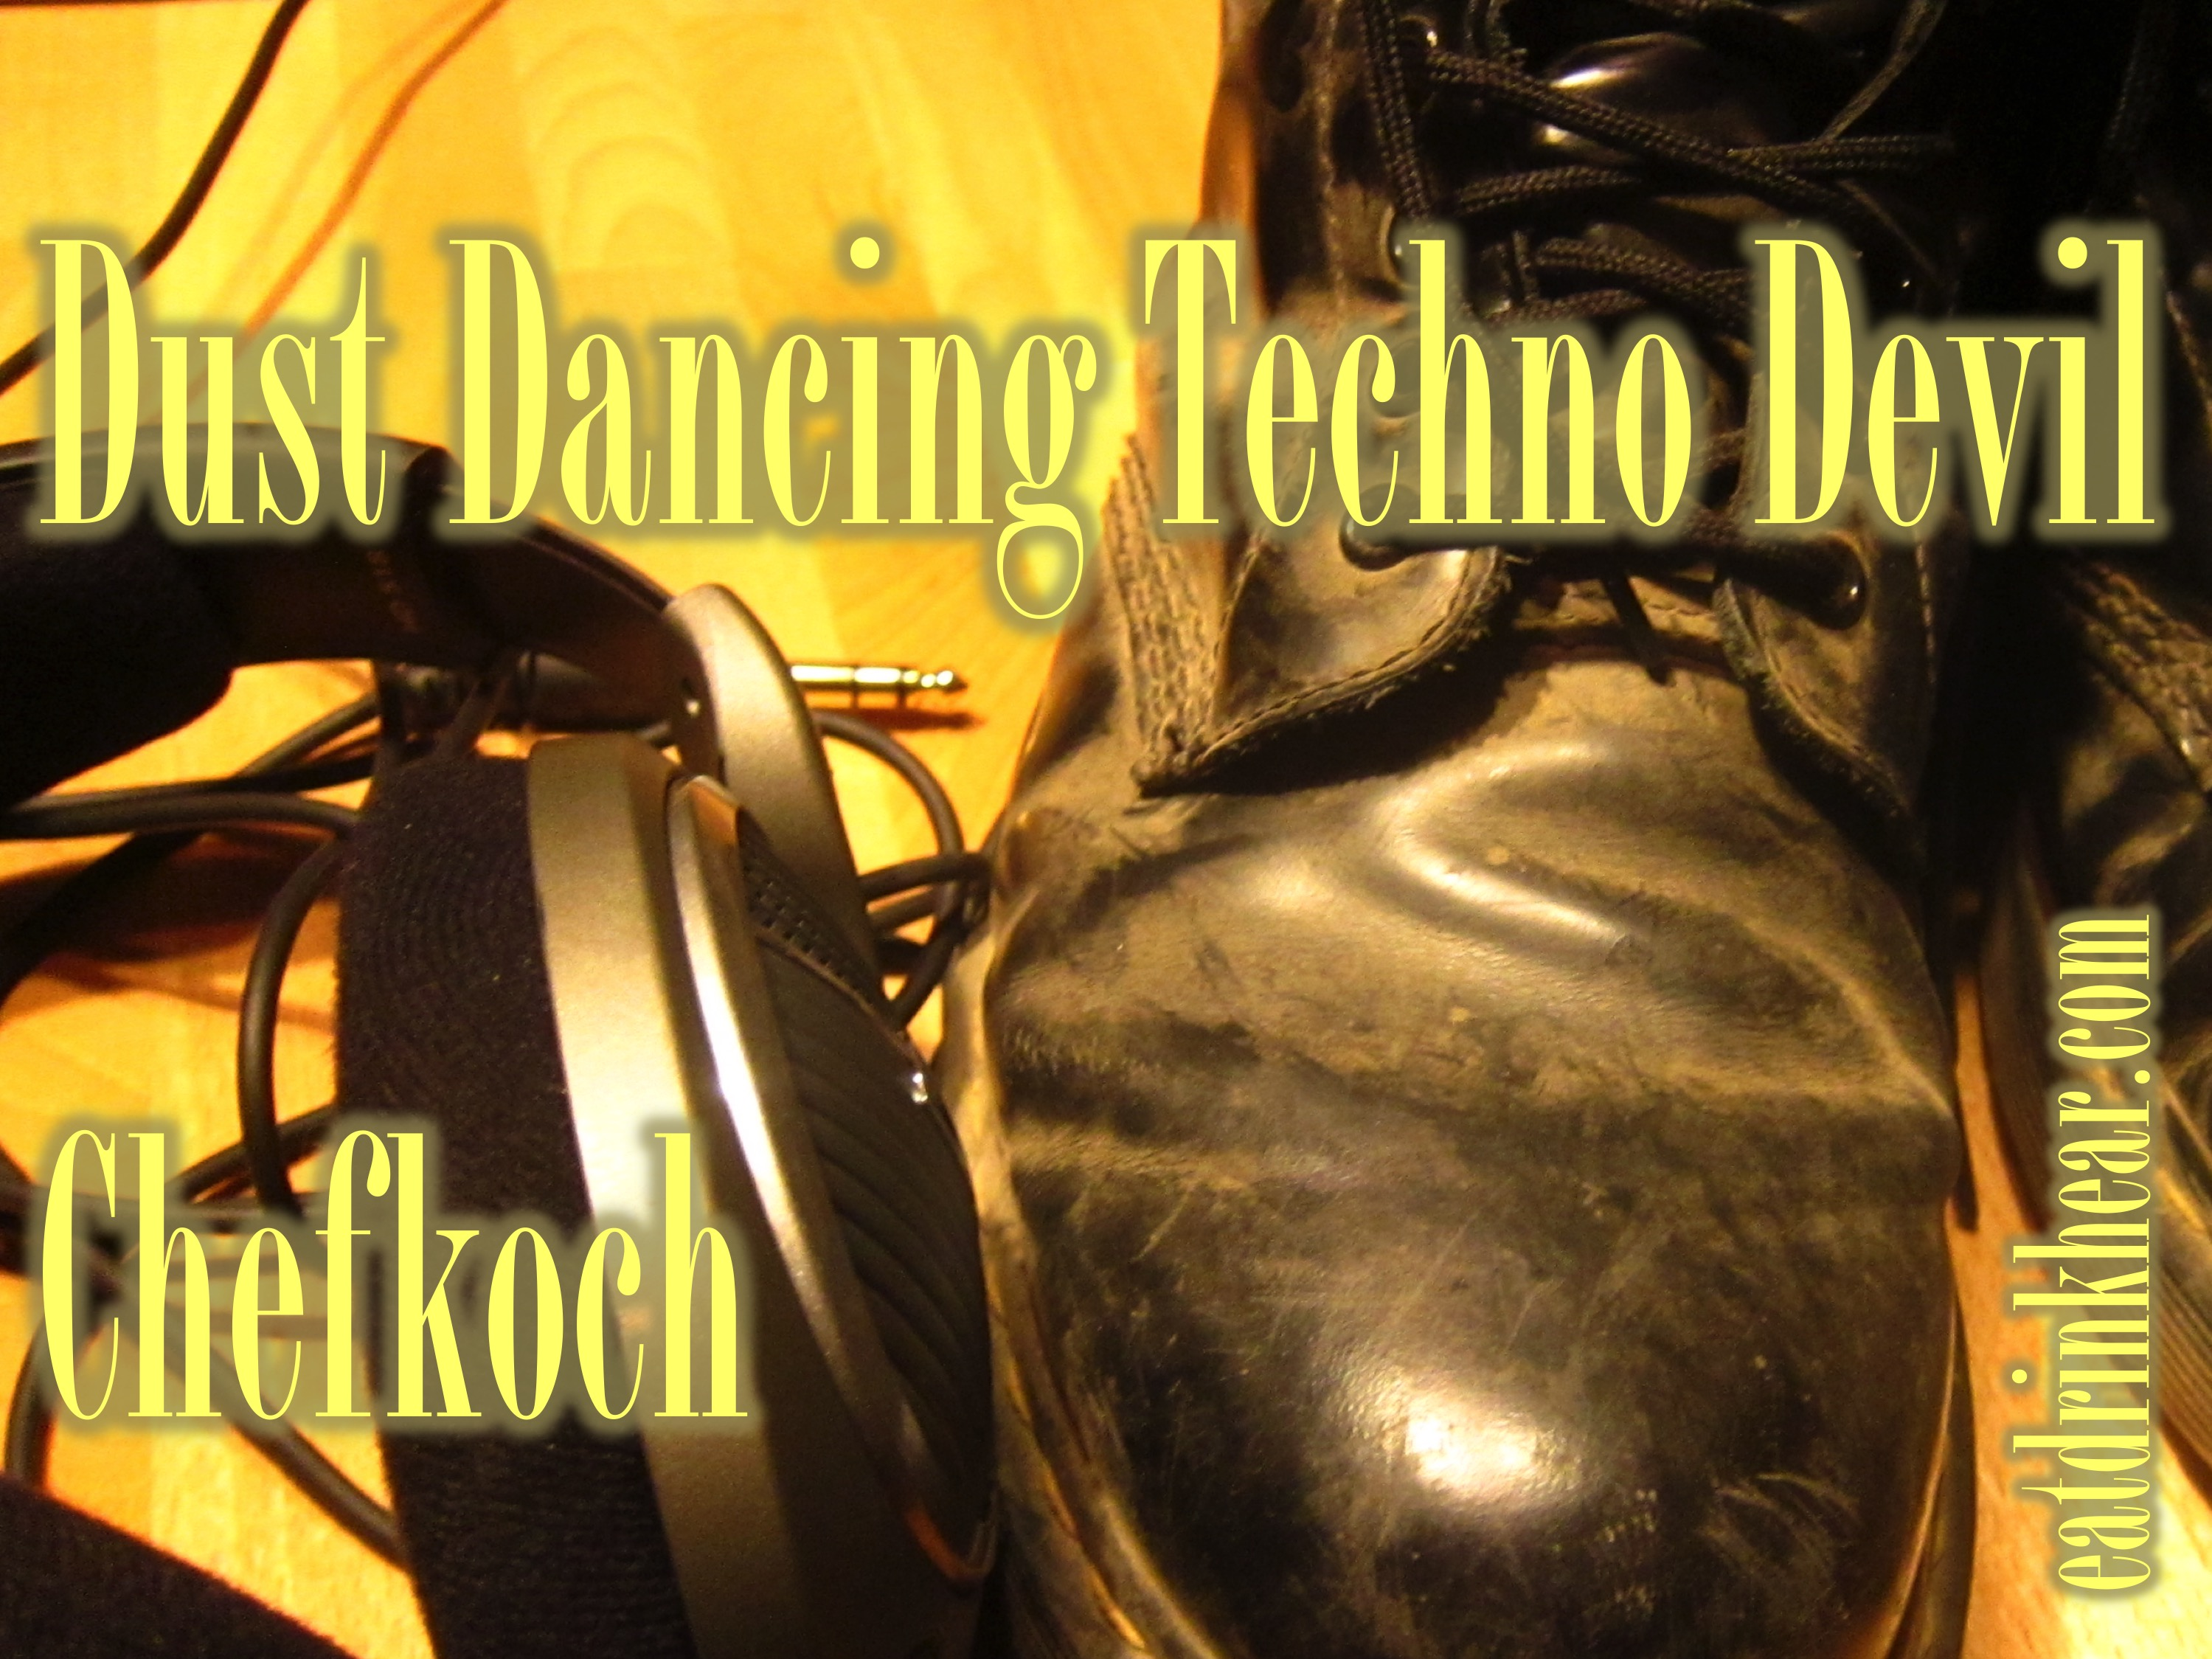 <!--:de-->Dust Dancing Techno Devil – Chefkoch<!--:--><!--:en-->Dust Dancing Techno Devil – Chefkoch<!--:-->